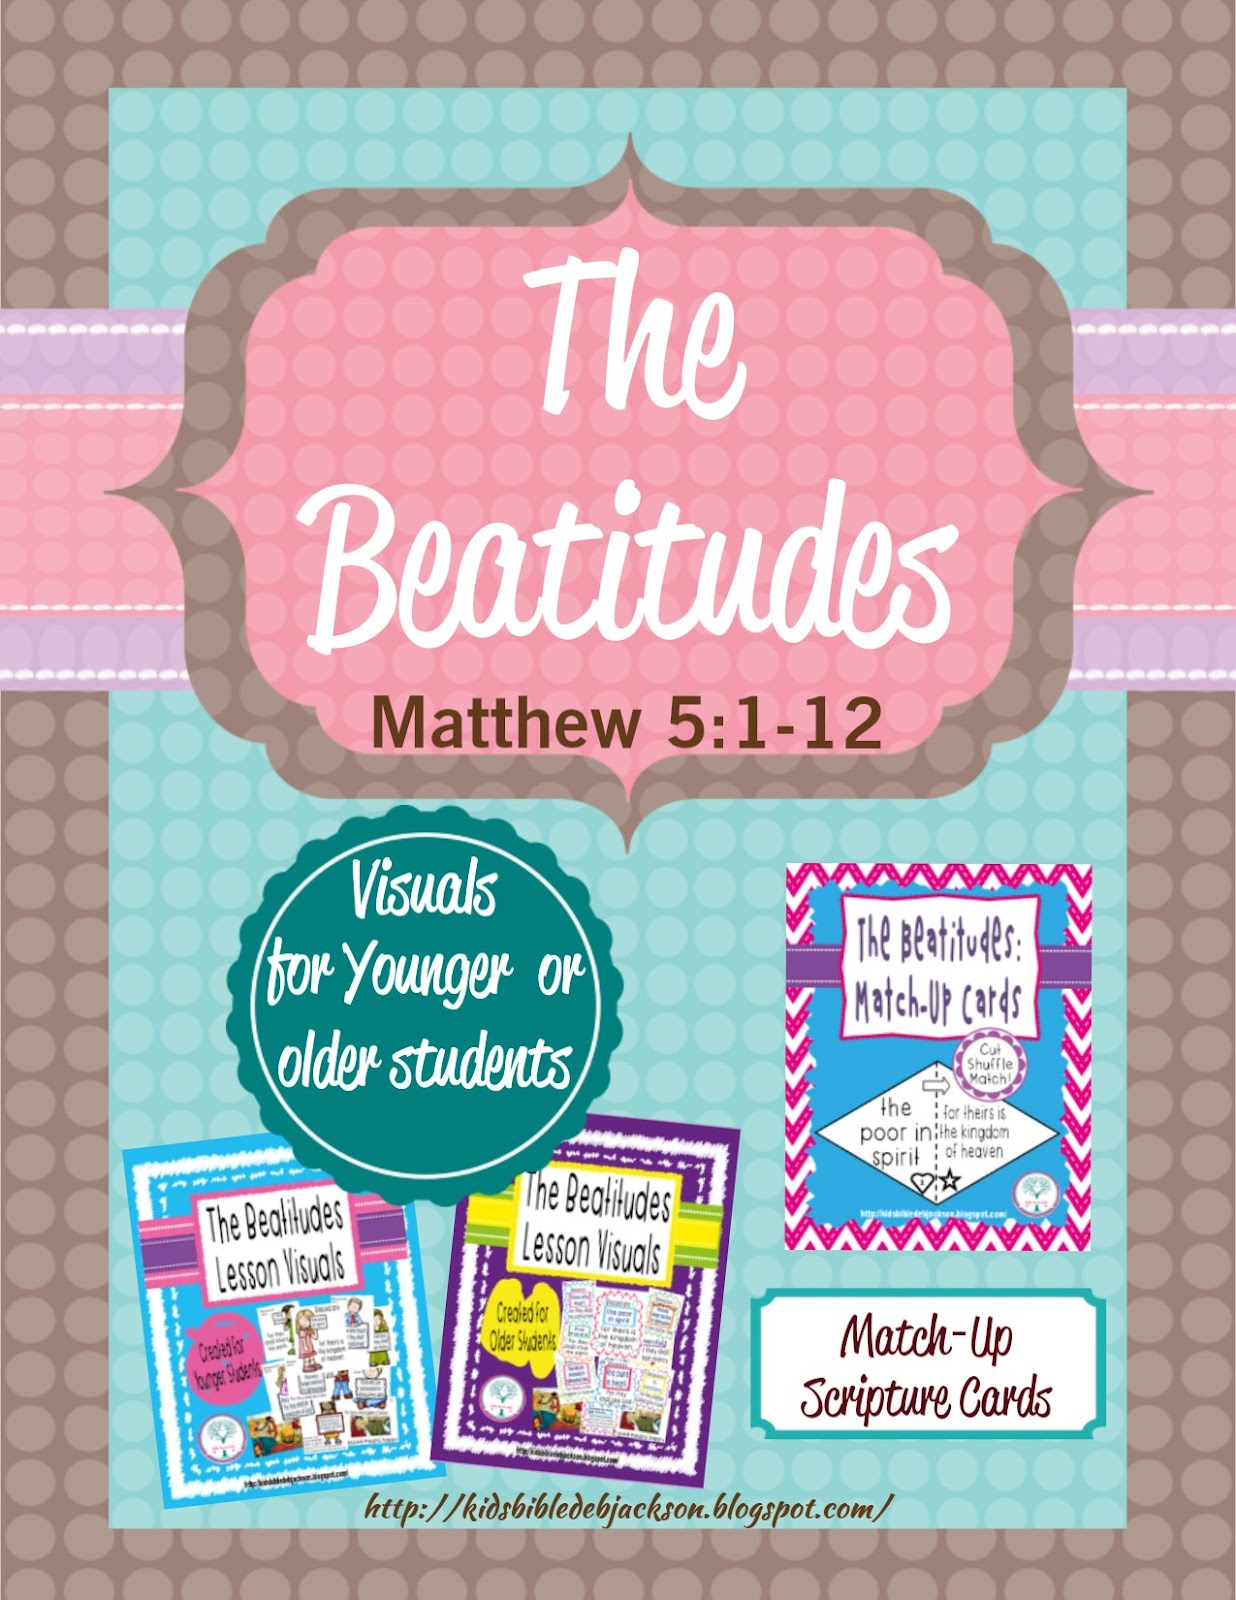 The Beatitudes. www.biblefunforkids.com